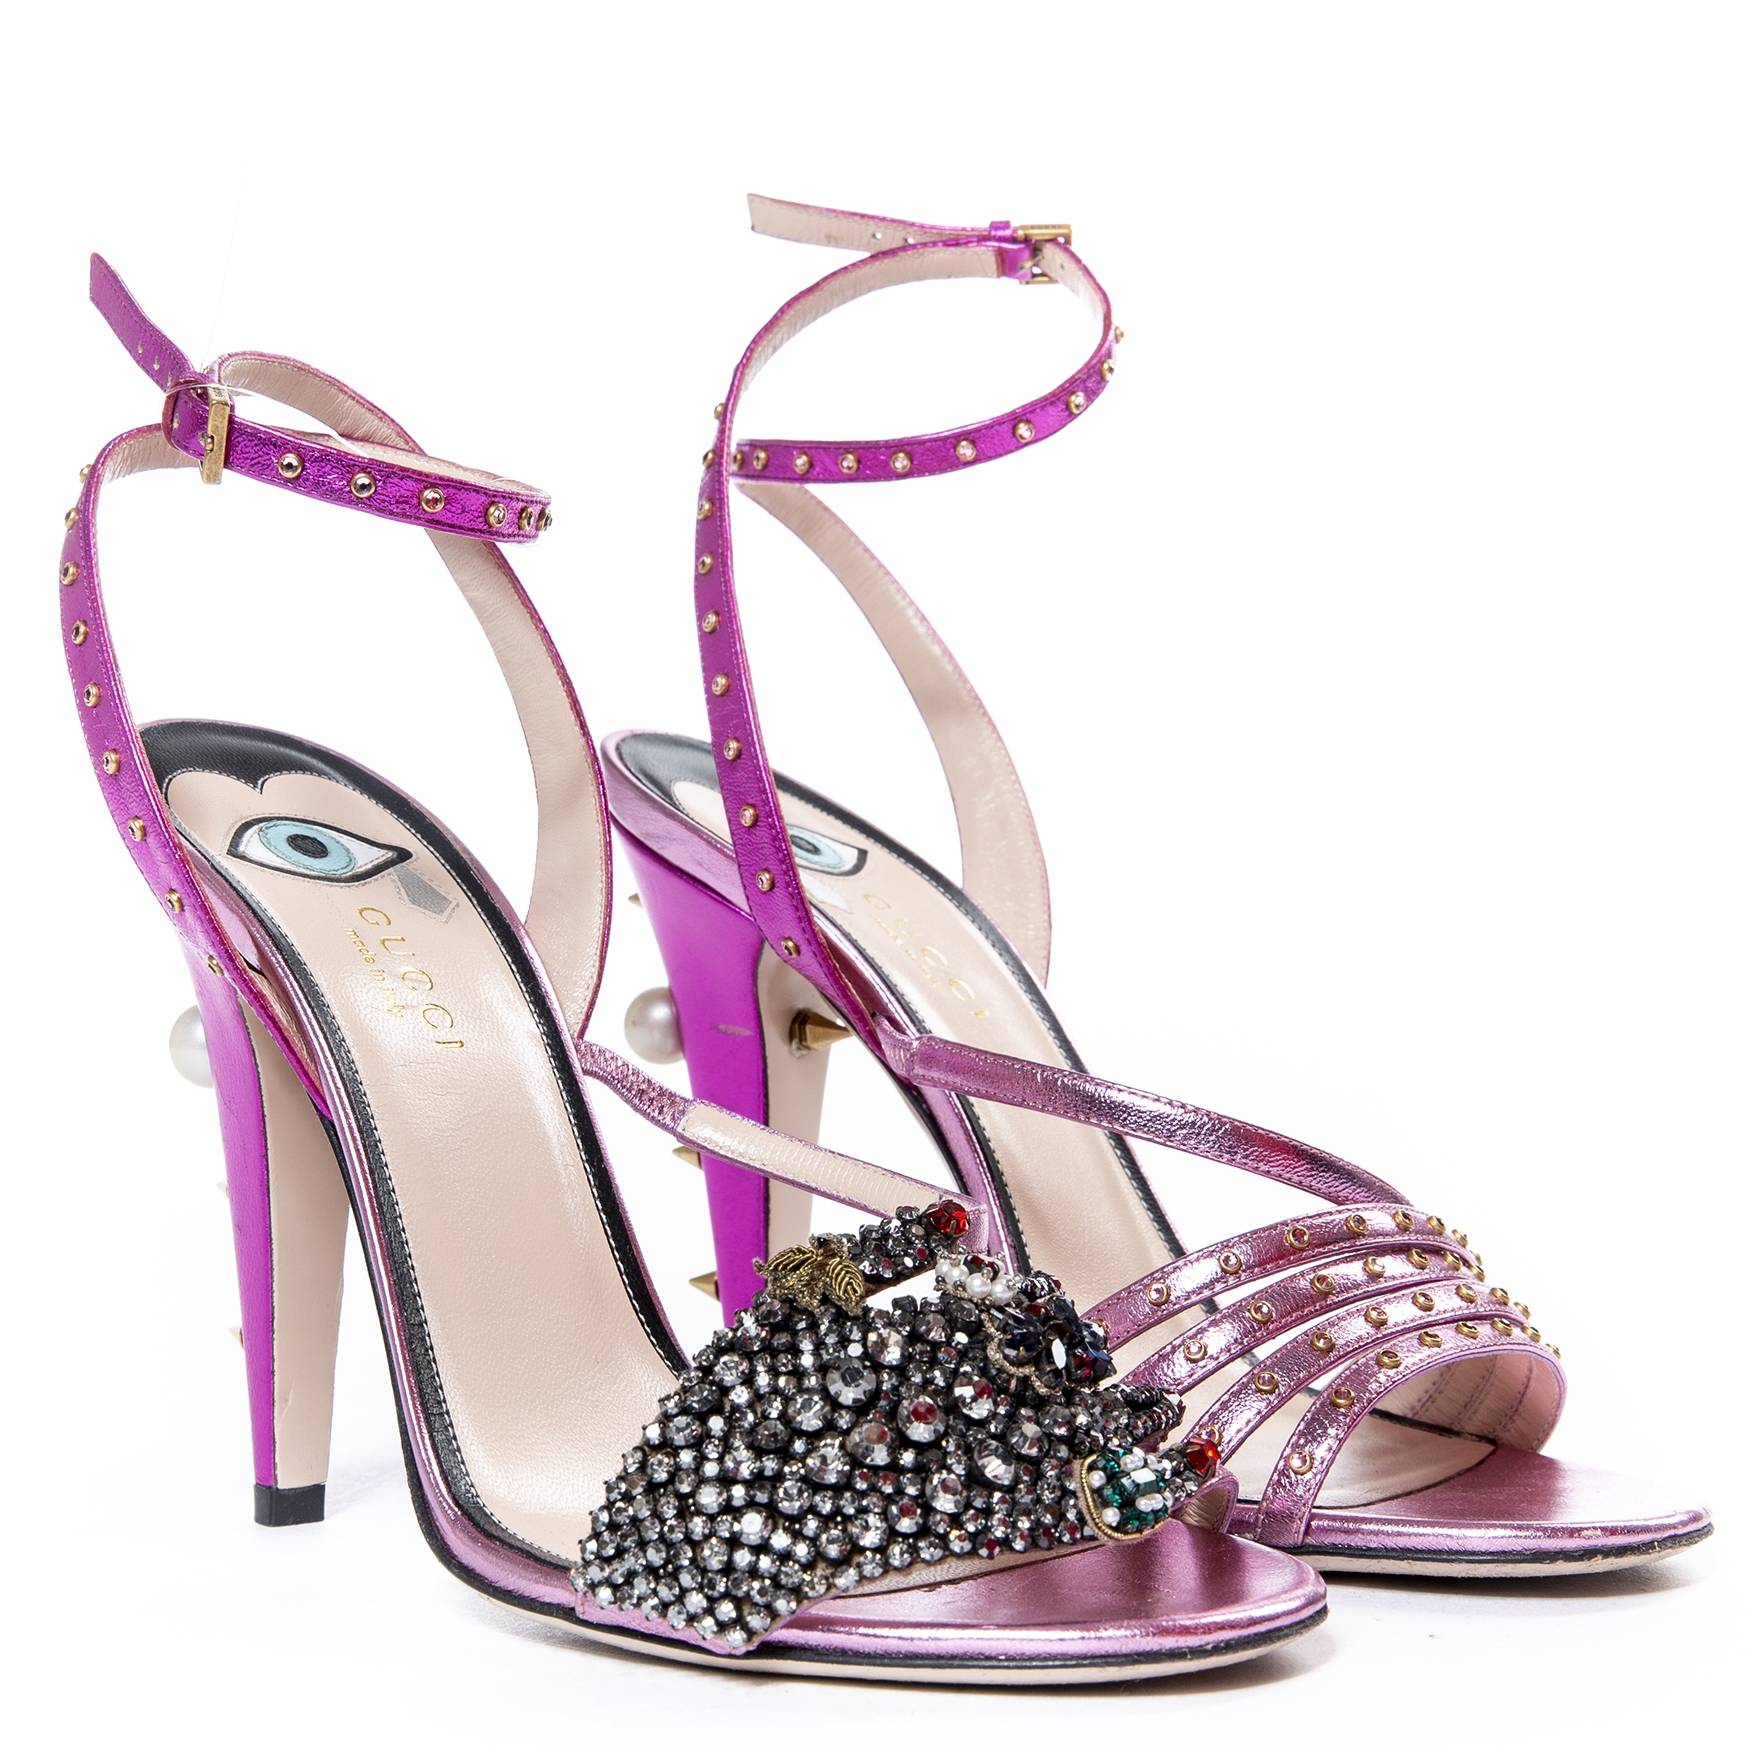 Gucci Fuschia Metallic Crystal Embellished Heels Sandals